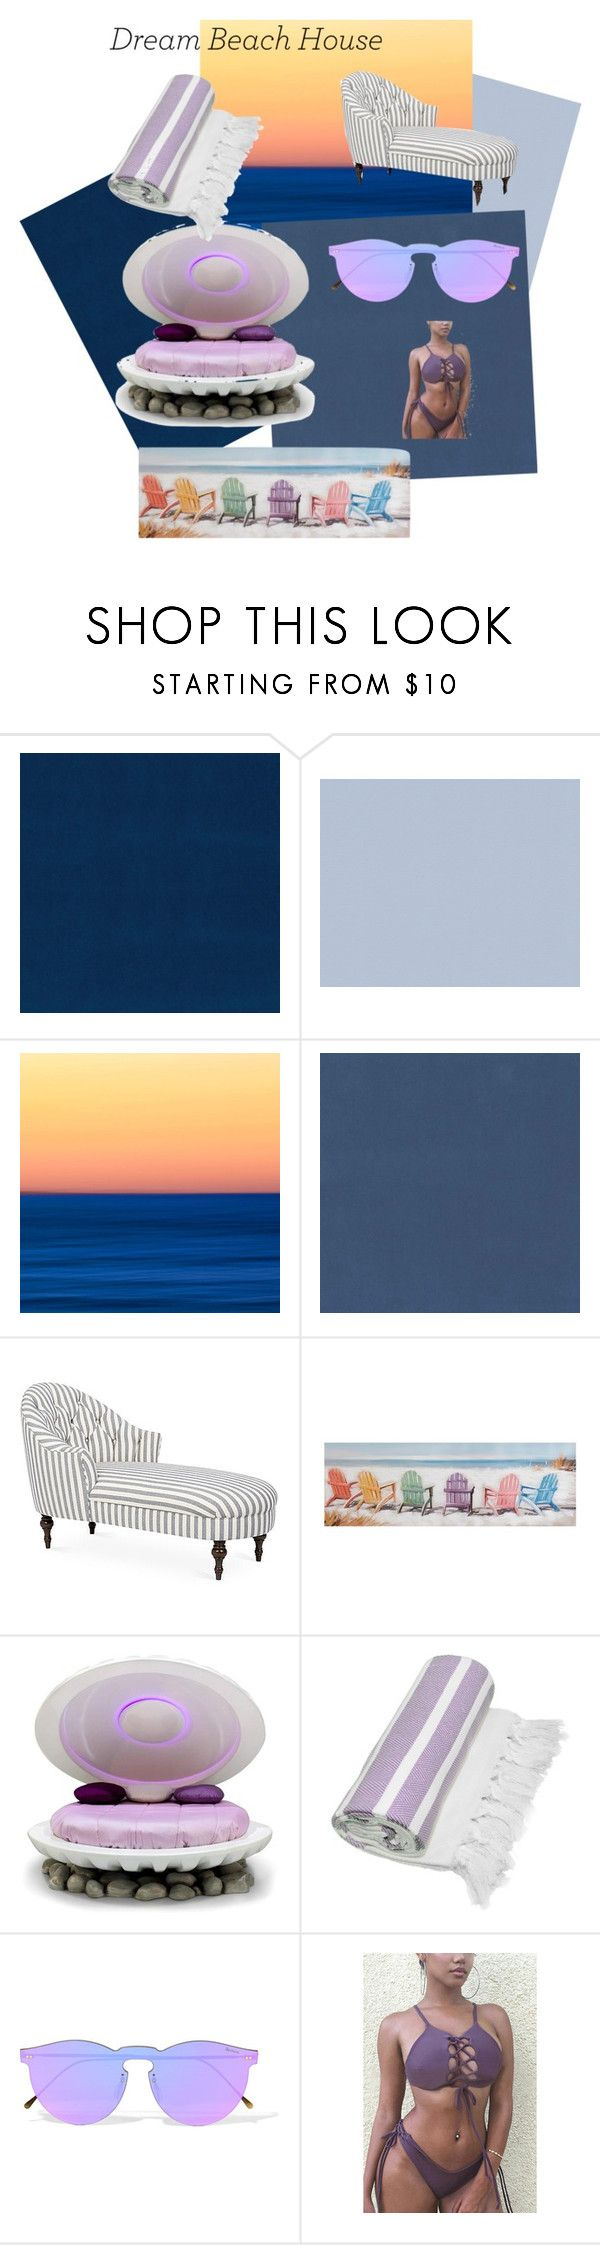 """""""Dream Beach House"""" by musicaltheater ❤ liked on Polyvore featuring interior, interiors, interior design, home, home decor, interior decorating, BD Fine Wallcoverings, Osborne & Little, Kim Salmela and Linum Home Textiles"""